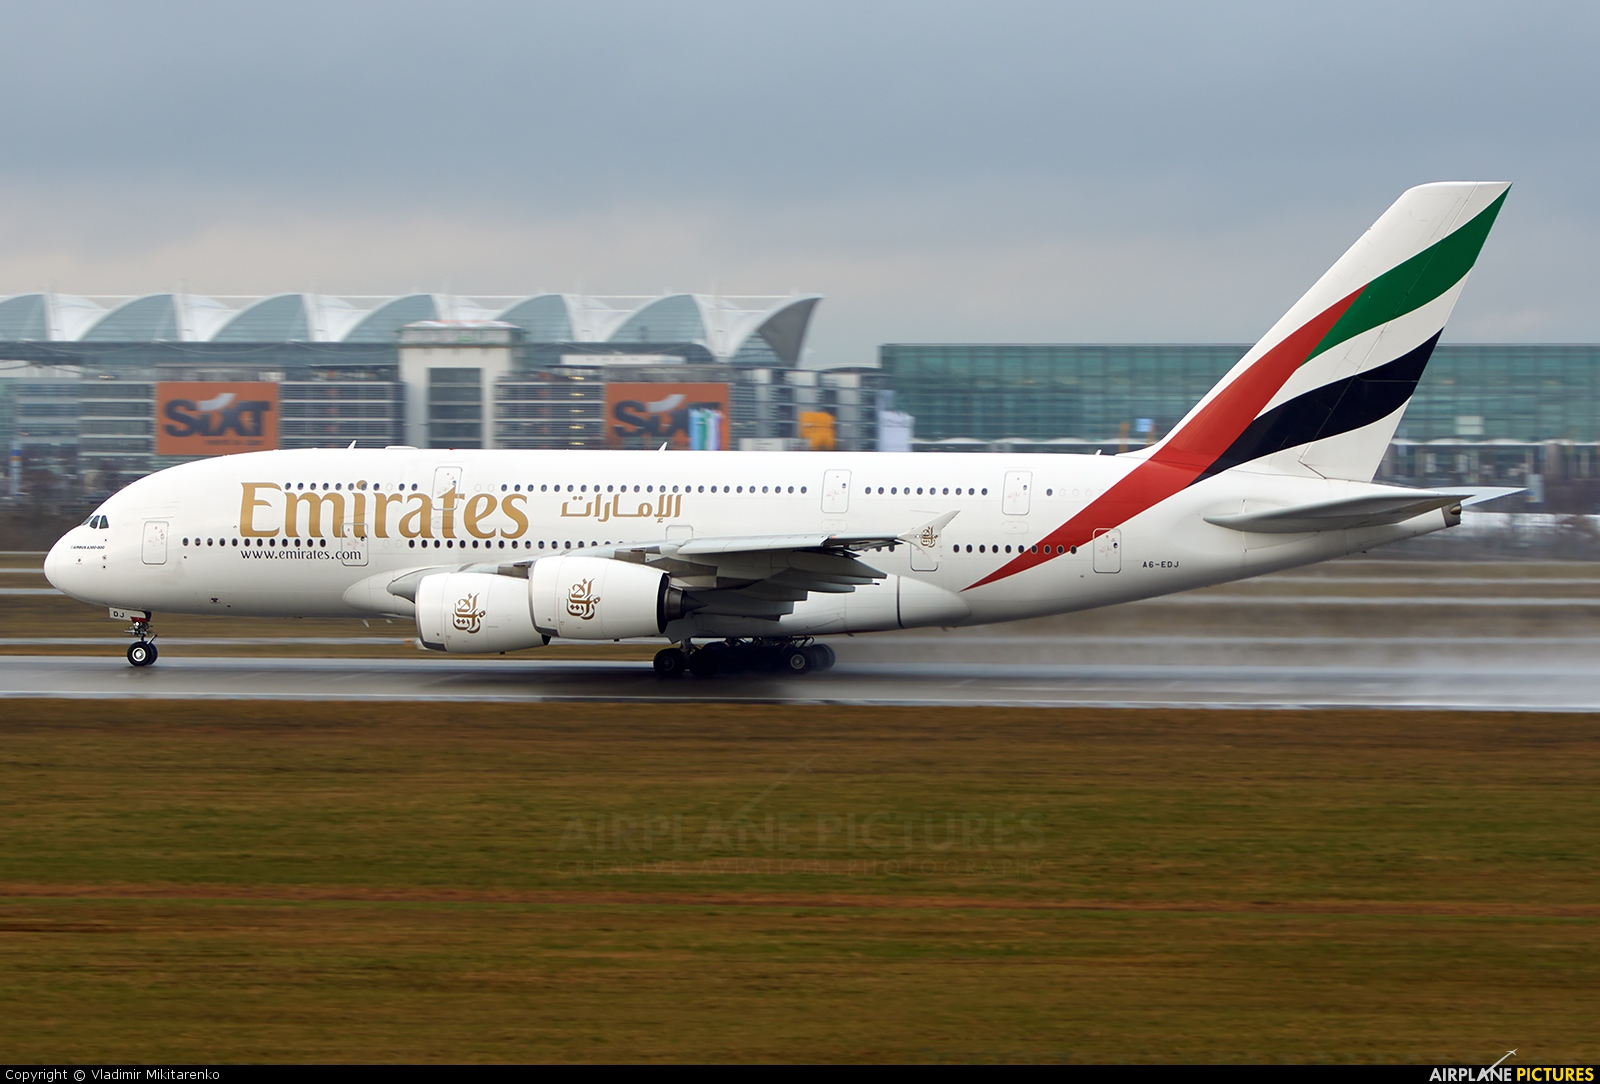 Emirates Airlines A6-EDJ aircraft at New York - John F. Kennedy Intl